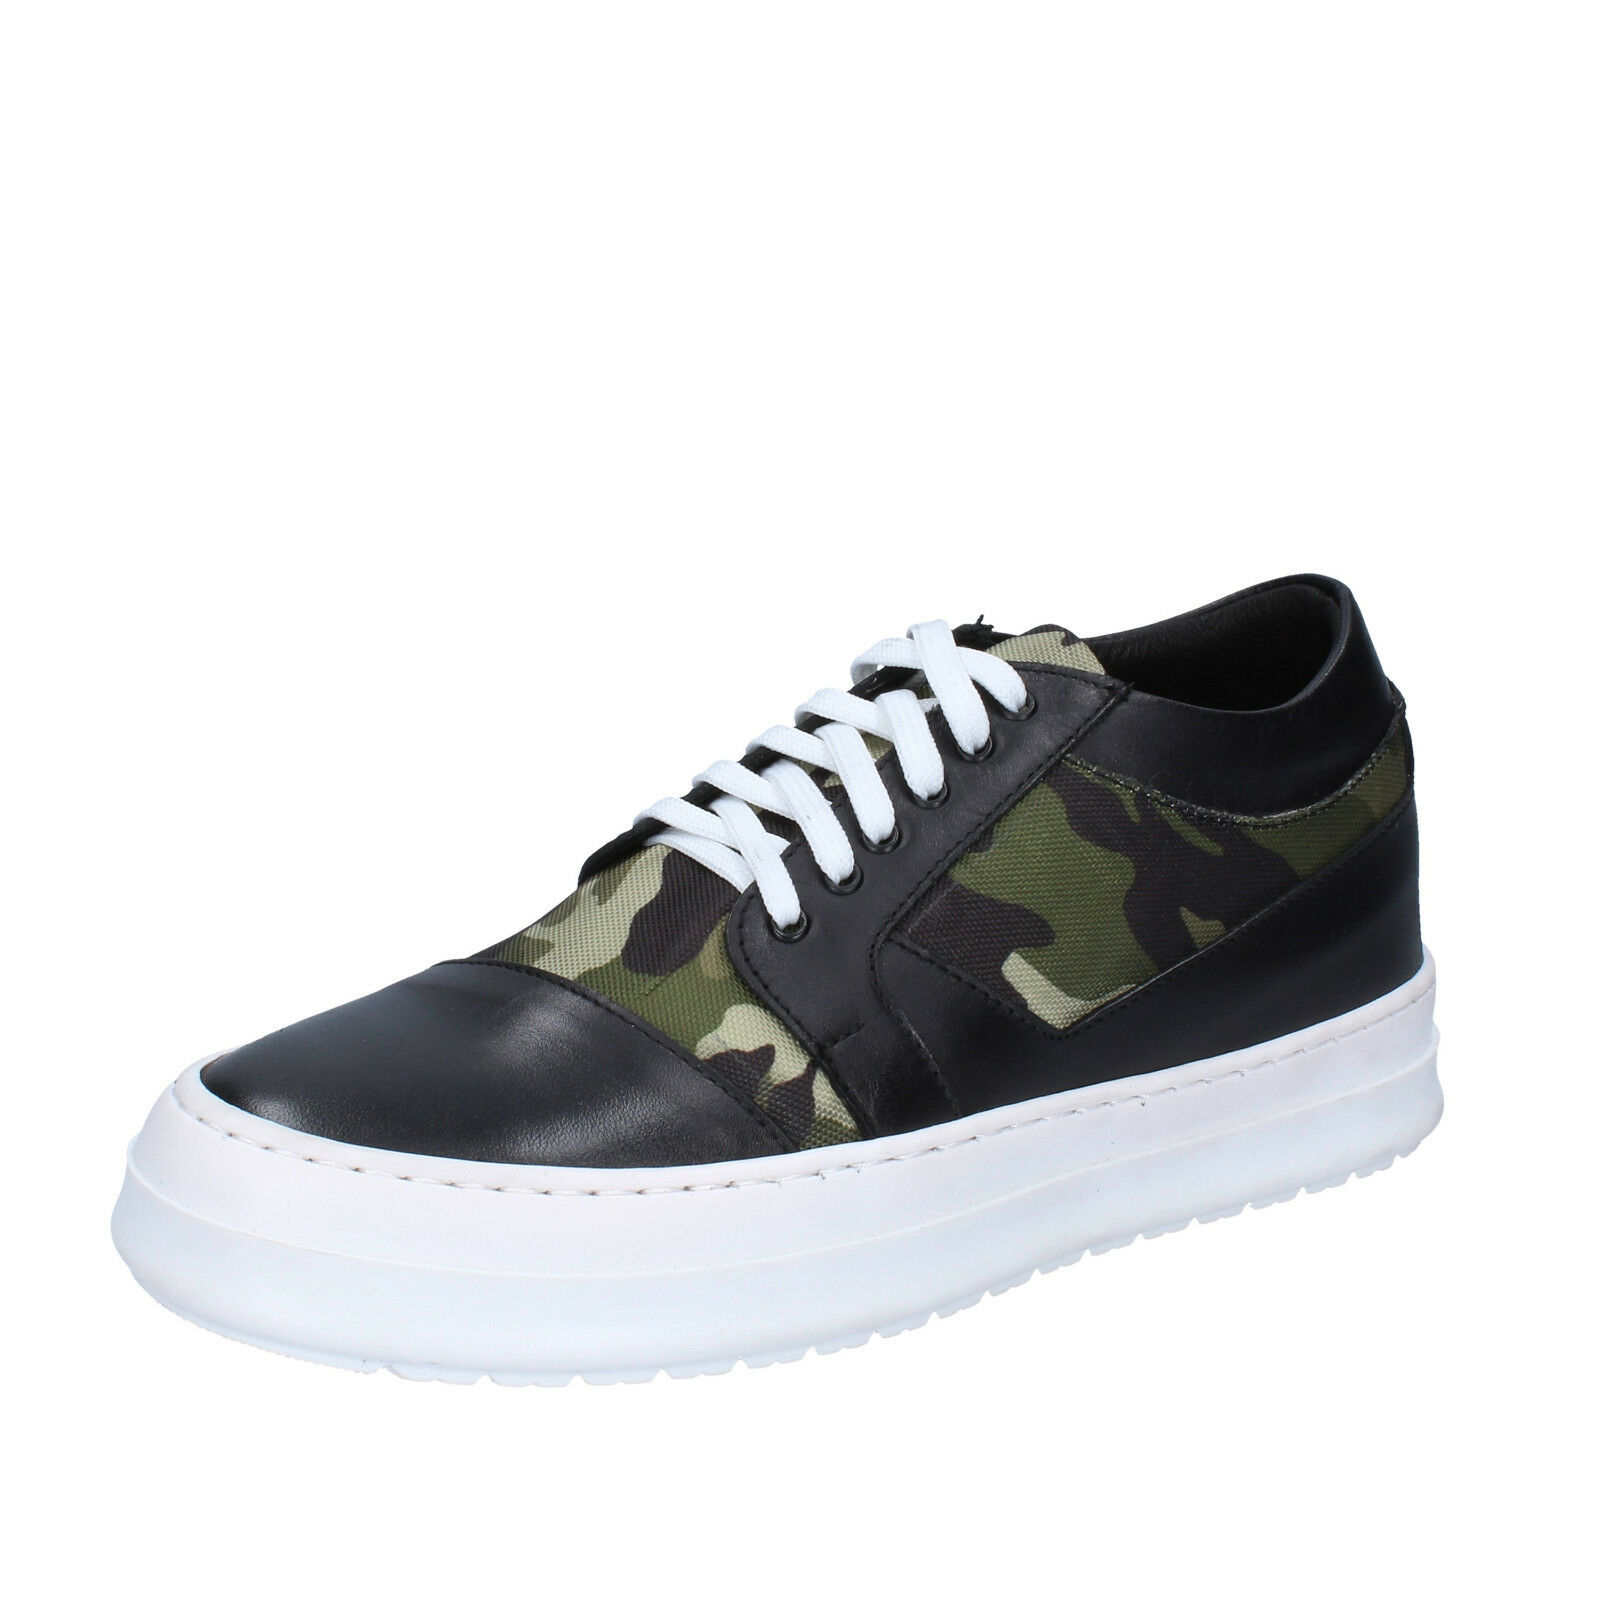 men's shoes FDF SHOES 12 () leather sneakers black green leather () textile BZ376-G e04fe5